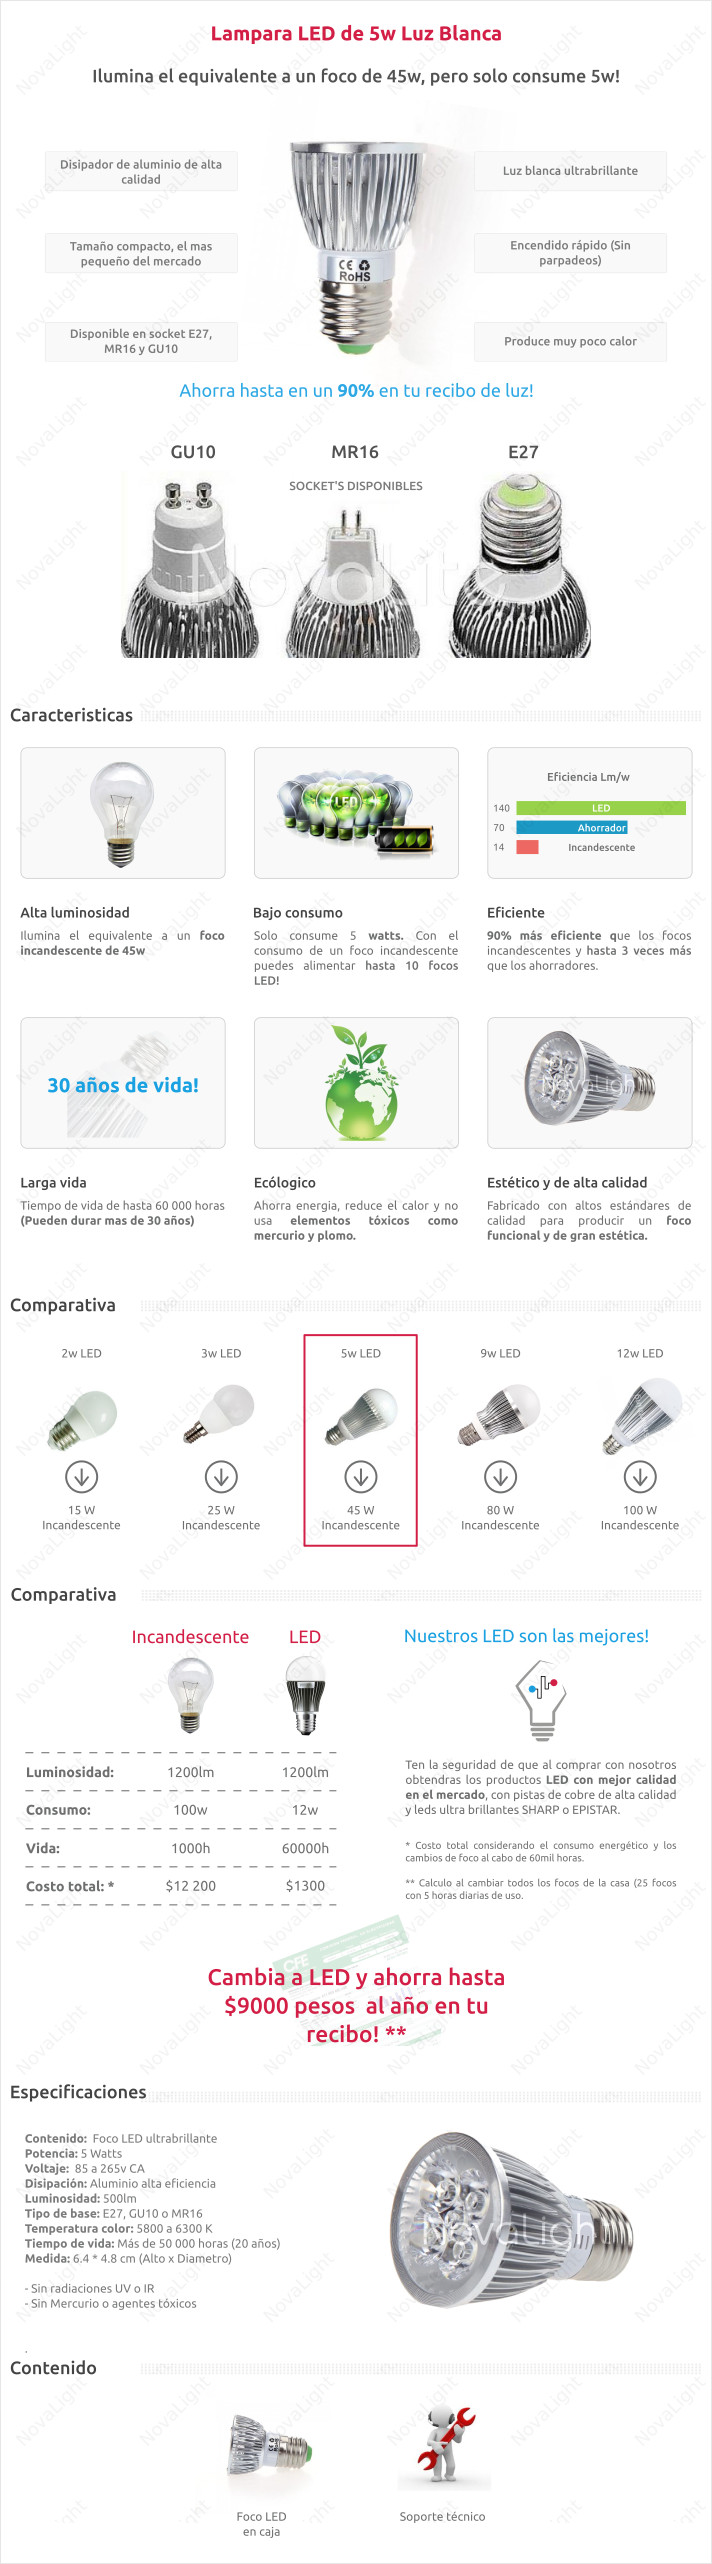 Descripción de lampara LED tipo Spot 5w